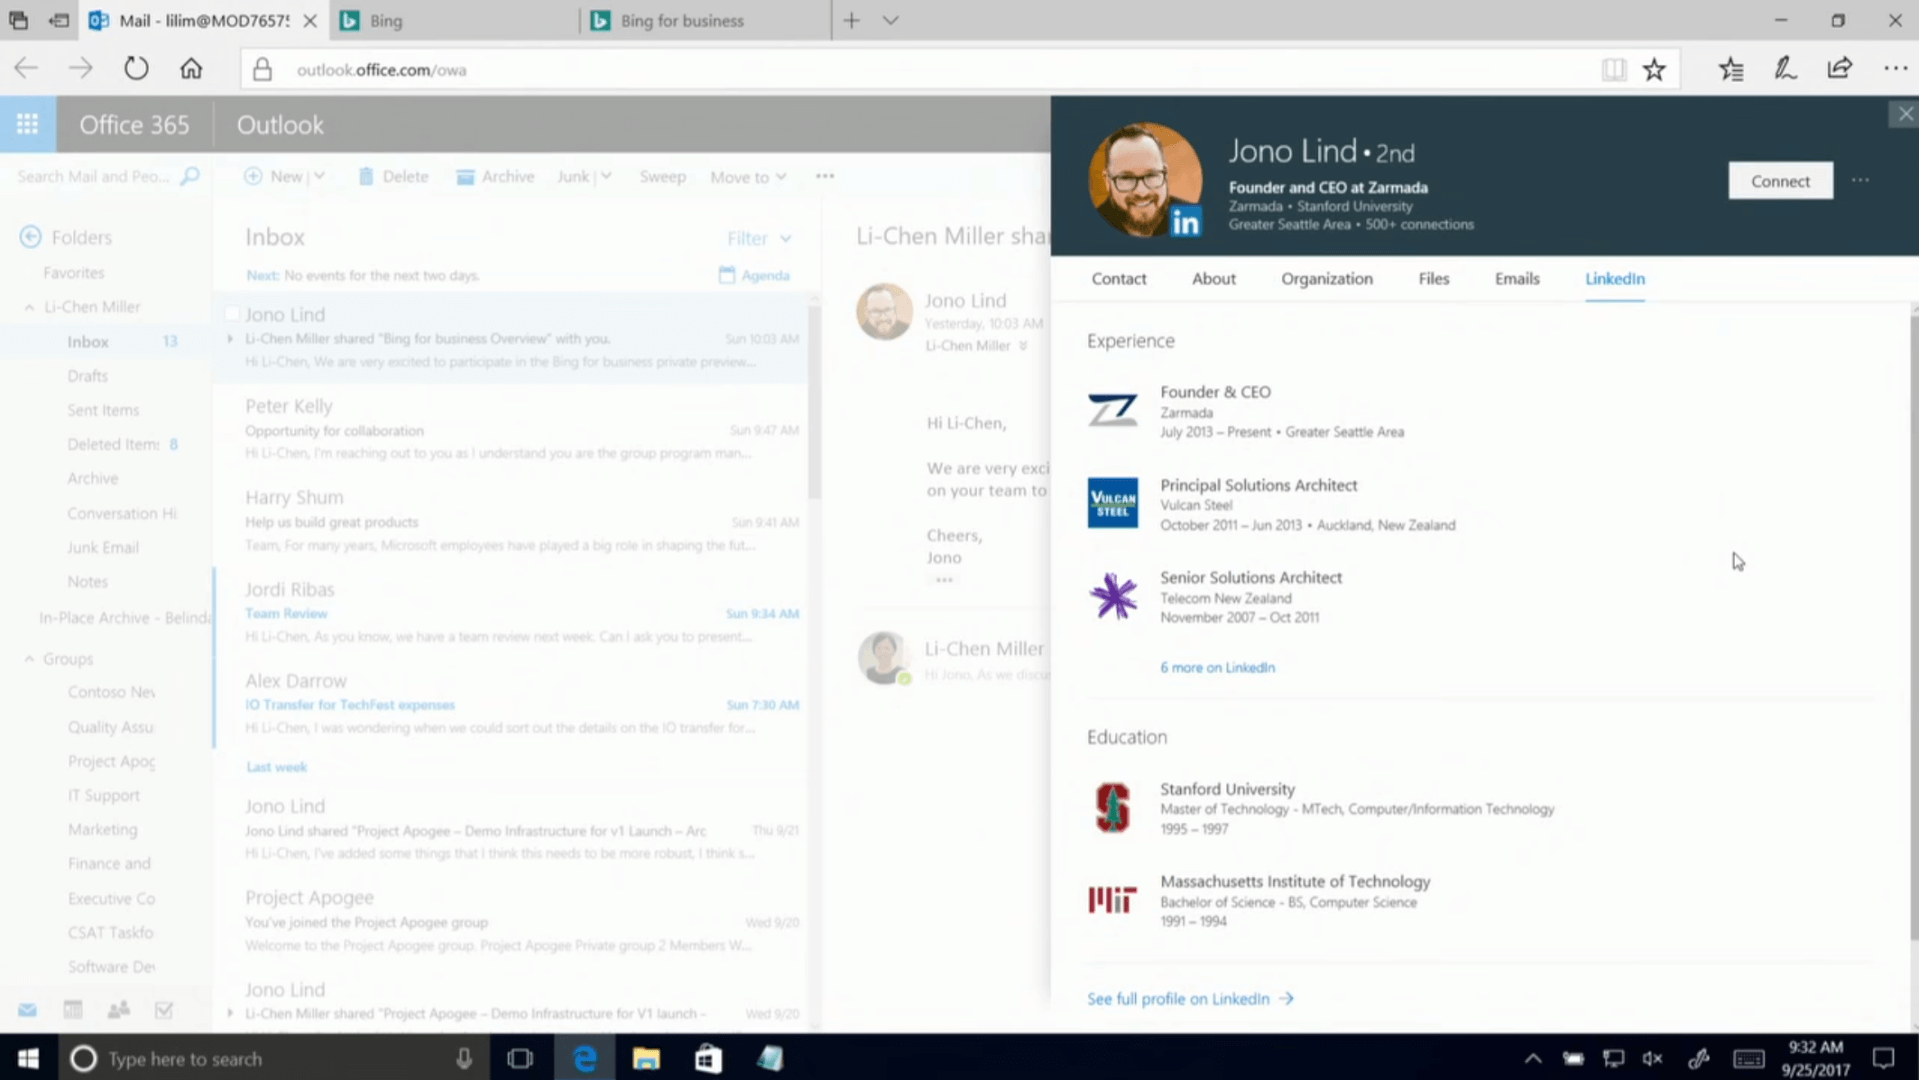 """Texte de remplacement généré par une machine: Mail lilim@MOD76S7! X Bing outlookoffice.comyowa Office 365 Outlook Inbox lnbox Bing for business Li Chen Miller sh. Jono Lind • 2nd Founder CEO at Zarmada Zarmada • Stanford Uruvervty fin Greater Seattle Area • SOO• Contact Expertence About Organization Files Emails Linkedln Hi lichen, We are verv exci on your team to (heers, Jono Founder & CEO Zarm.ada July 20'3 - Present • Greater Seattle Area Principal Solutions Architect Vulcan Stee• October 2011 — iun 2013 • New Zealand Senior Solutions Architect relecom New Zealand 2007 - oa 2011 6 rmre Education Stanford University Master of Technology Cornsx'ternn'ormat'""""' 1995 - '997 Massachusetts Institute of Technology Bachelot of S' 'once - B S Corrout« Sc.e«xe 1991 _ See full profile on l.tnkedln o Type here to search Connect 932 AM 9/25/2017"""